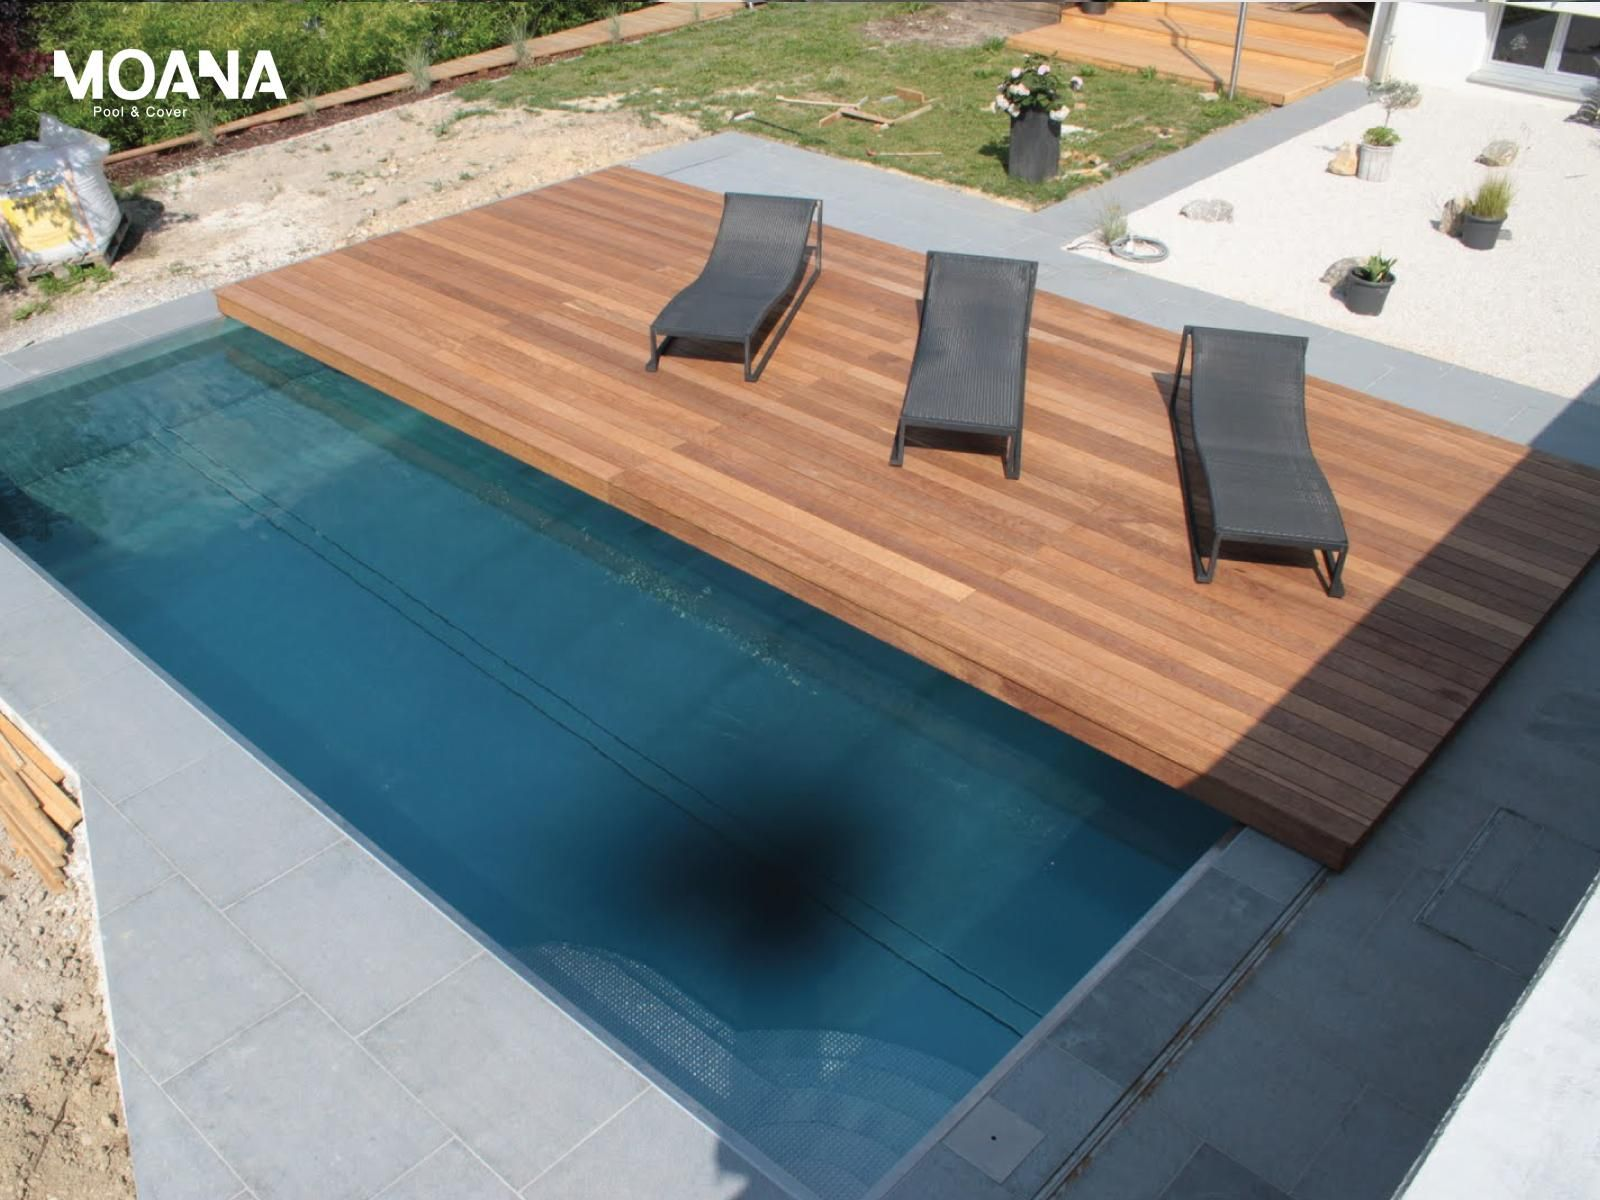 Sliding Deck To Cover Pool When Not In Use Perfect